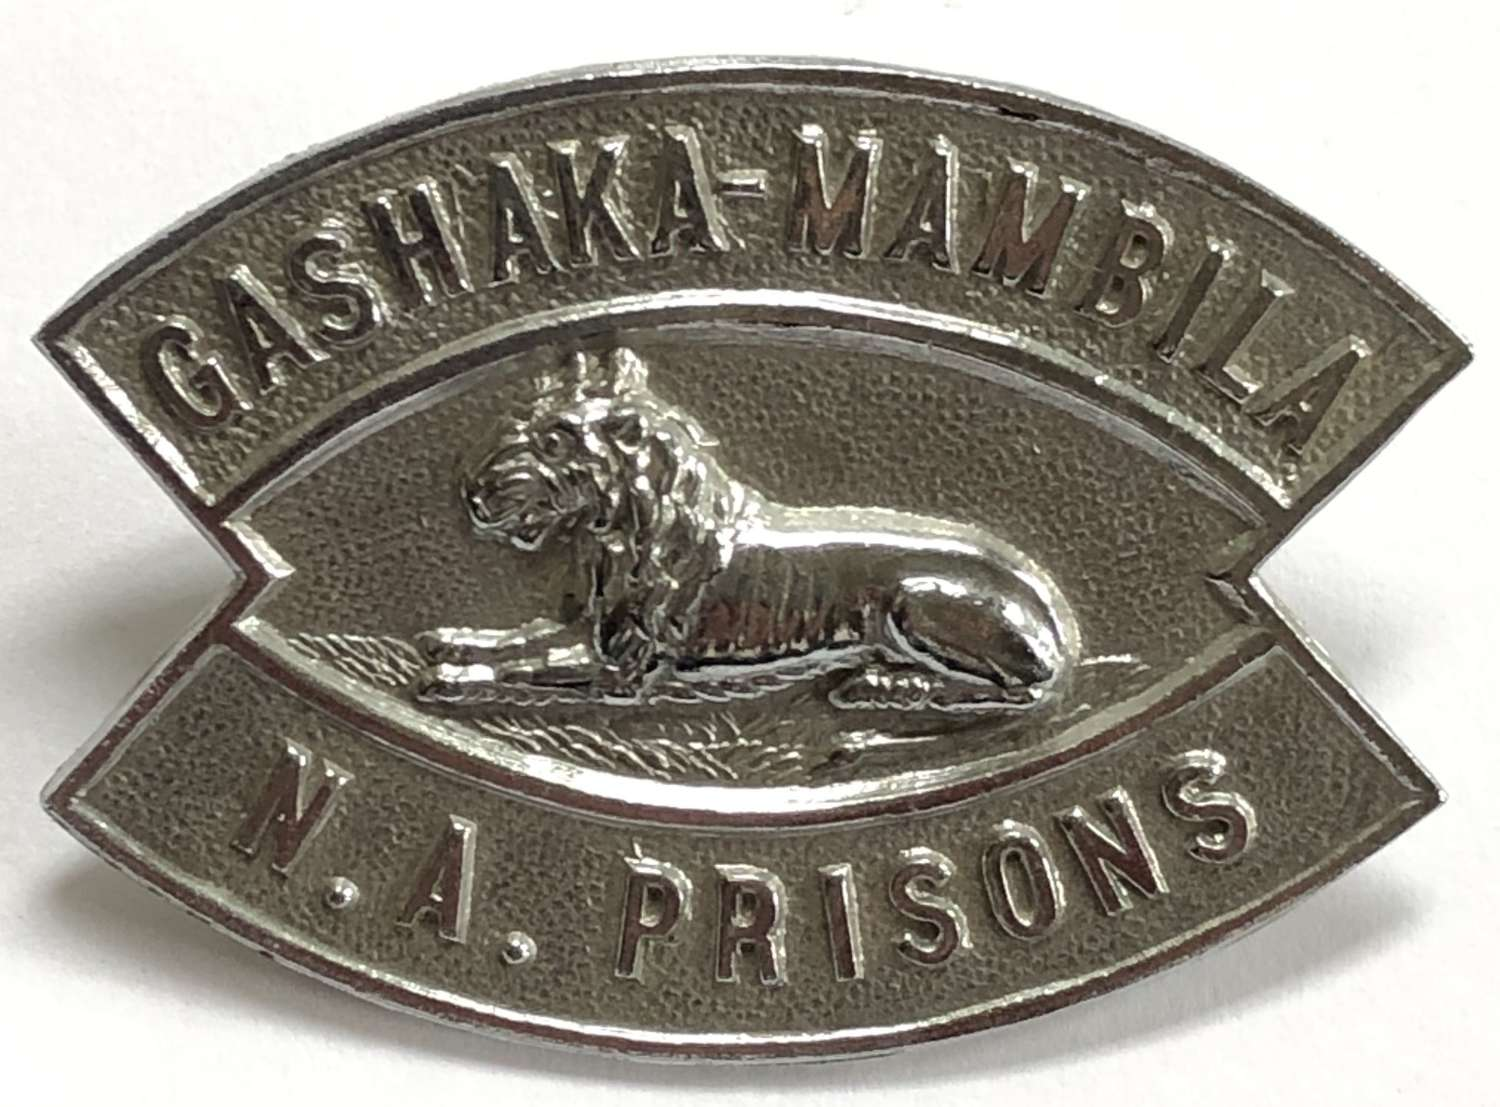 Nigeria. Cashaka-Mambila Native Administration Prisons badge